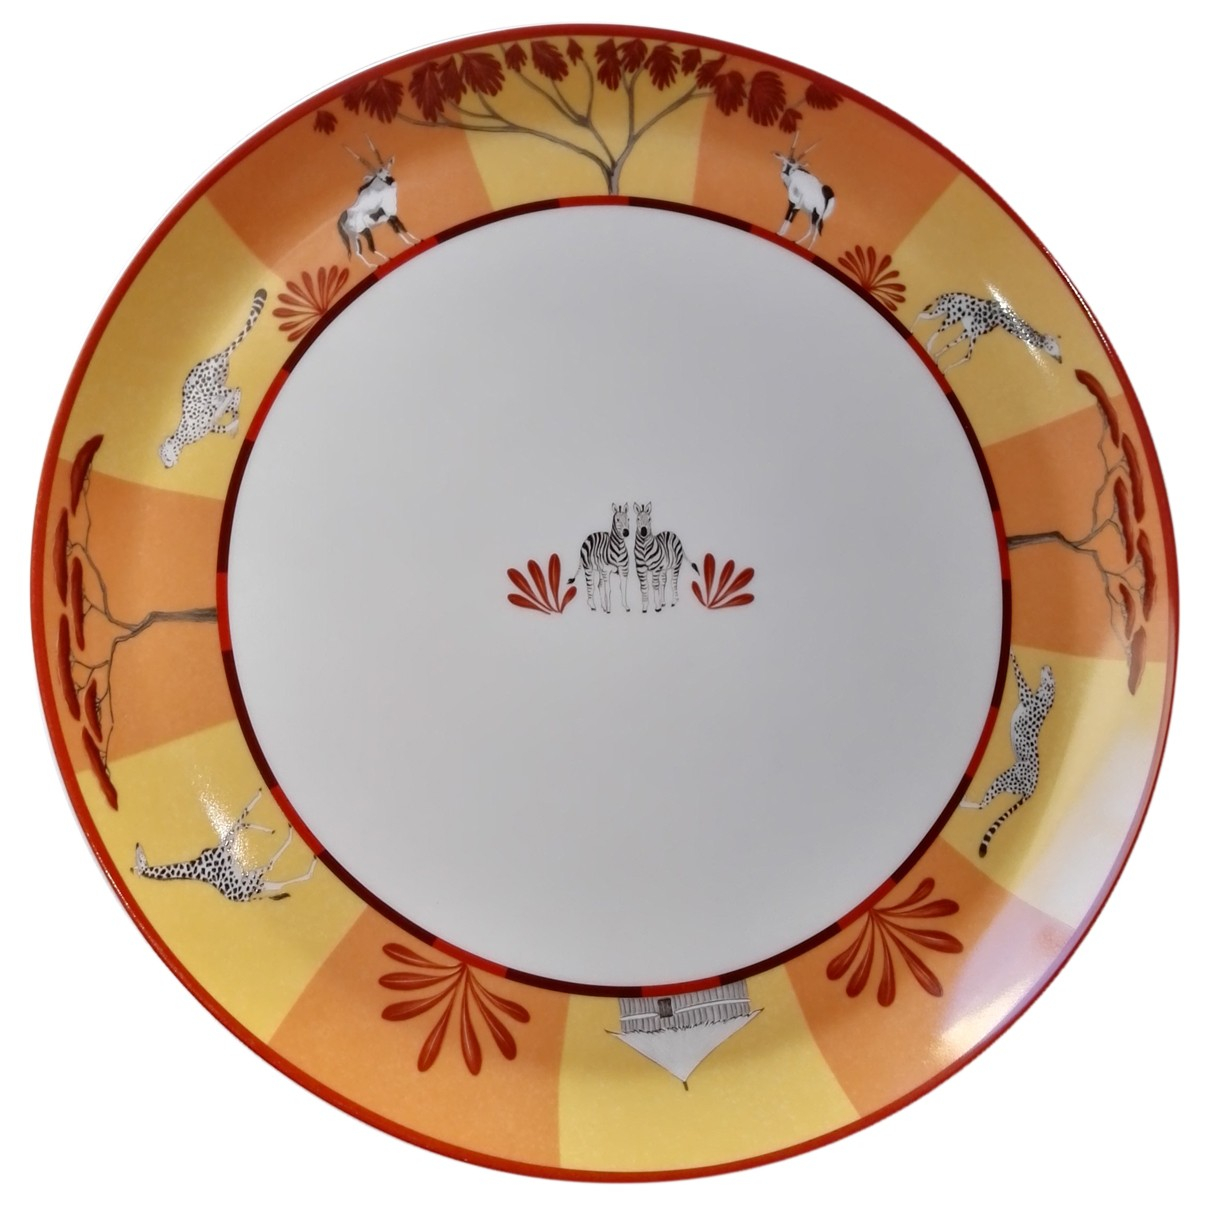 Hermes - Arts de la table   pour lifestyle en porcelaine